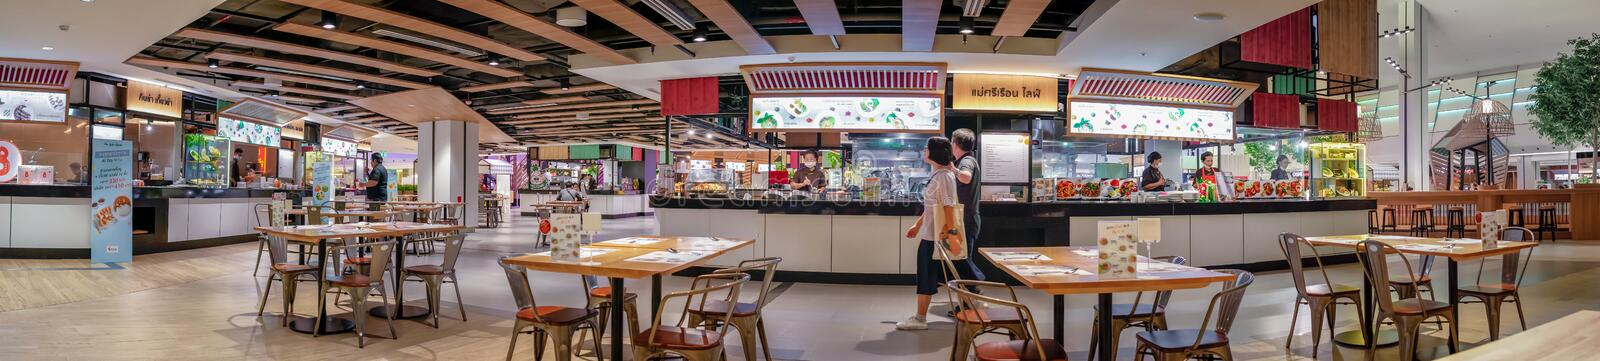 BANGKOK, THAILAND - JUNE 11: Food court opens and does business as usual in Seacon Square shopping mall in Bangkok on June 11, stock photo